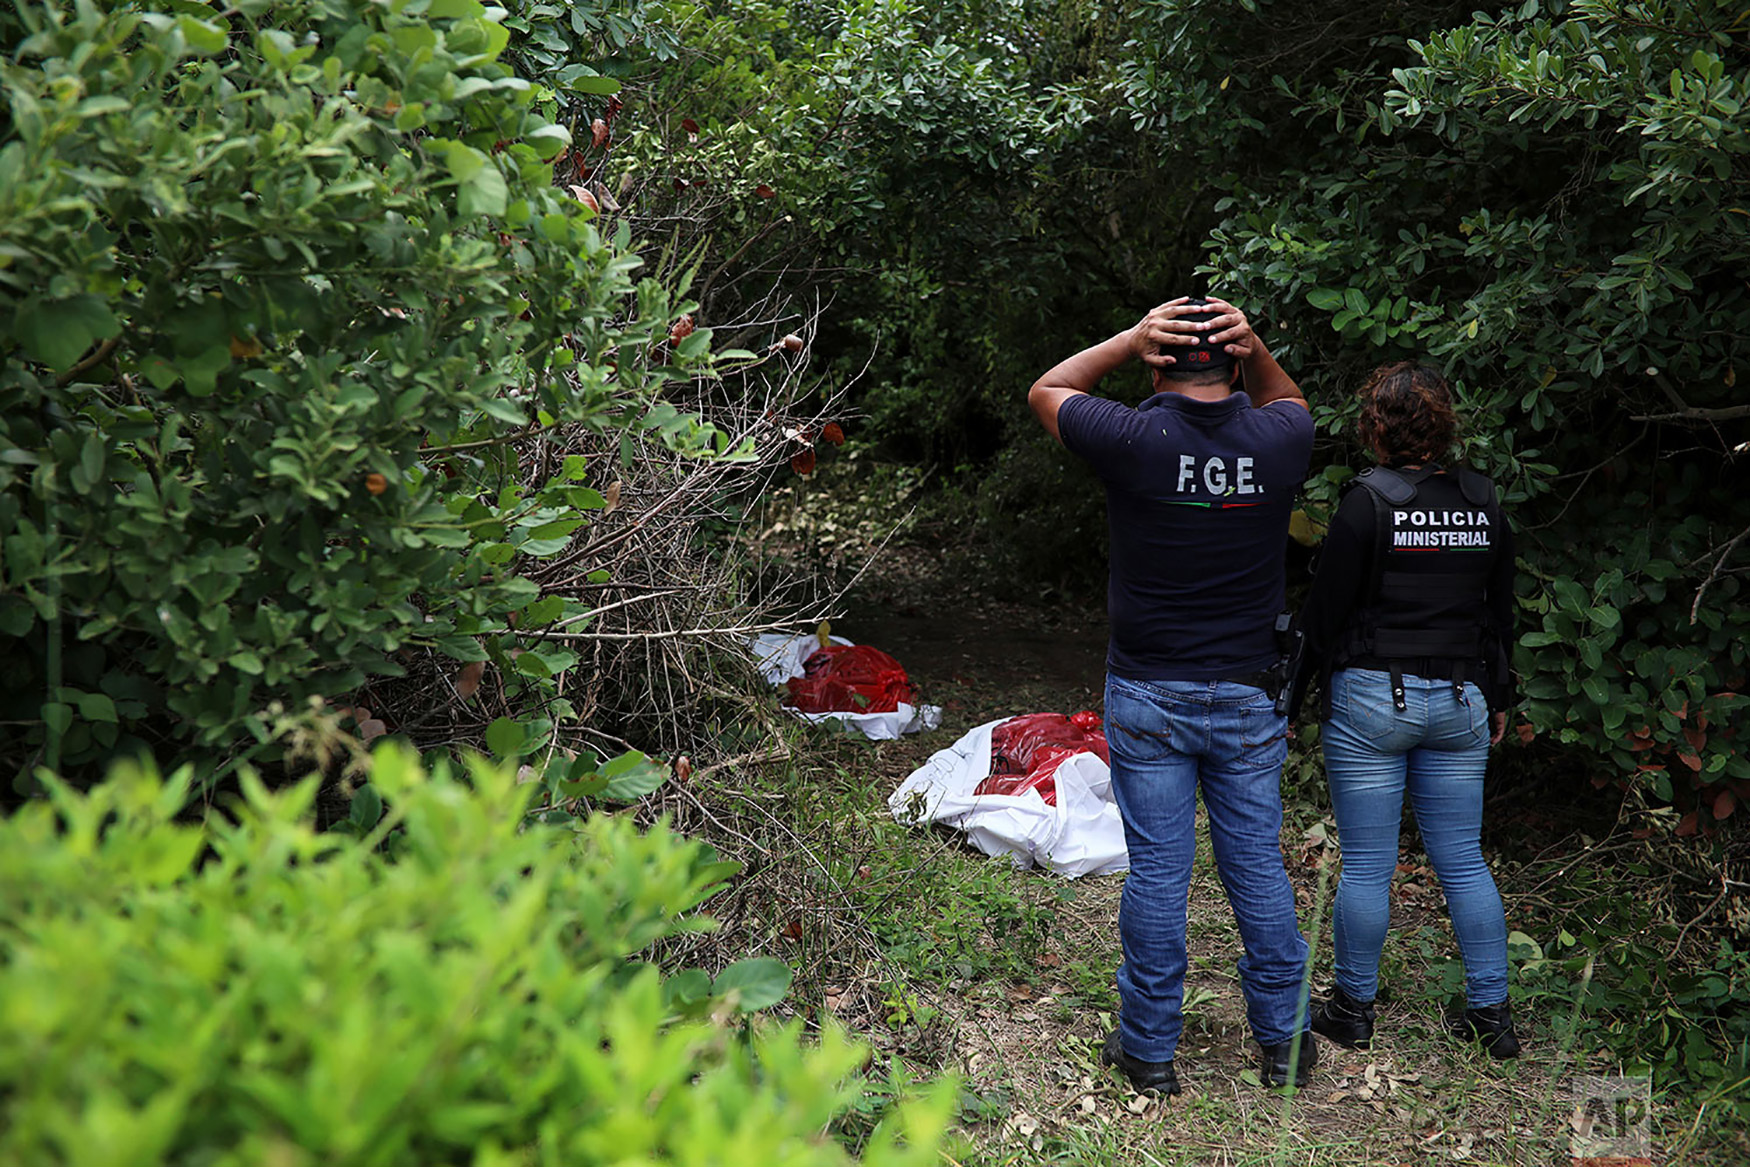 Investigators look at human remains placed in red evidence bags, dug from a clandestine grave site in Arbolillo, Veracruz state, Mexico, Sept. 7, 2018. One day after authorities in the Mexican state of Veracruz announced the discovery of at least 166 skulls in mass graves, journalists who arrived at the site Friday discovered it was the same location where authorities said they had found 47 bodies the previous year. (AP Photo/Felix Marquez)